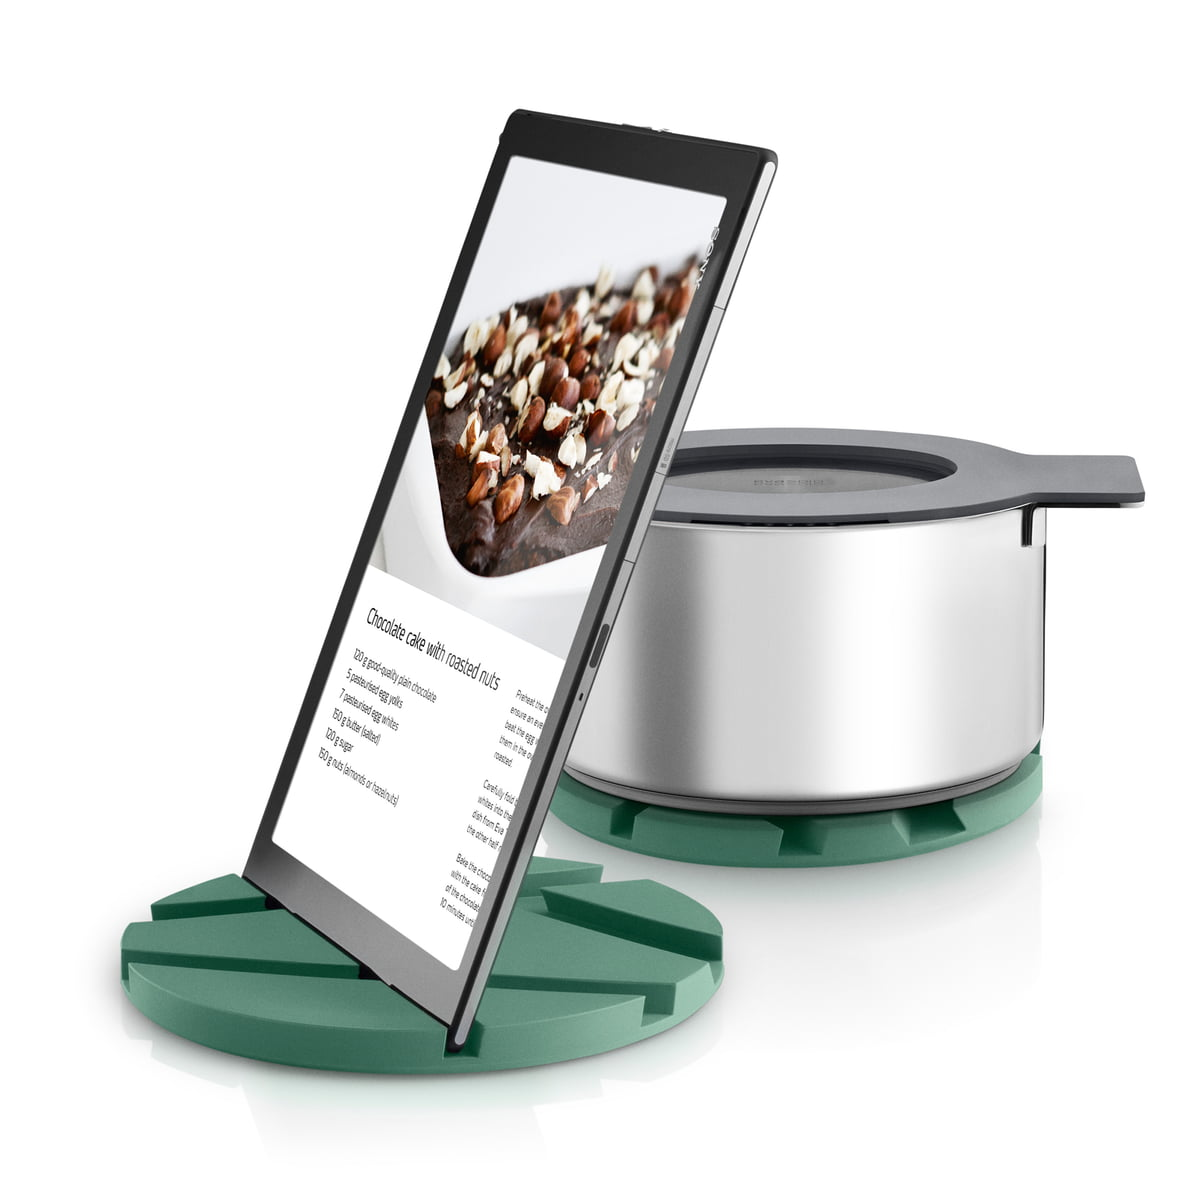 Green Kitchen App Android: SmartMat By Eva Solo In The Interior Design Shop